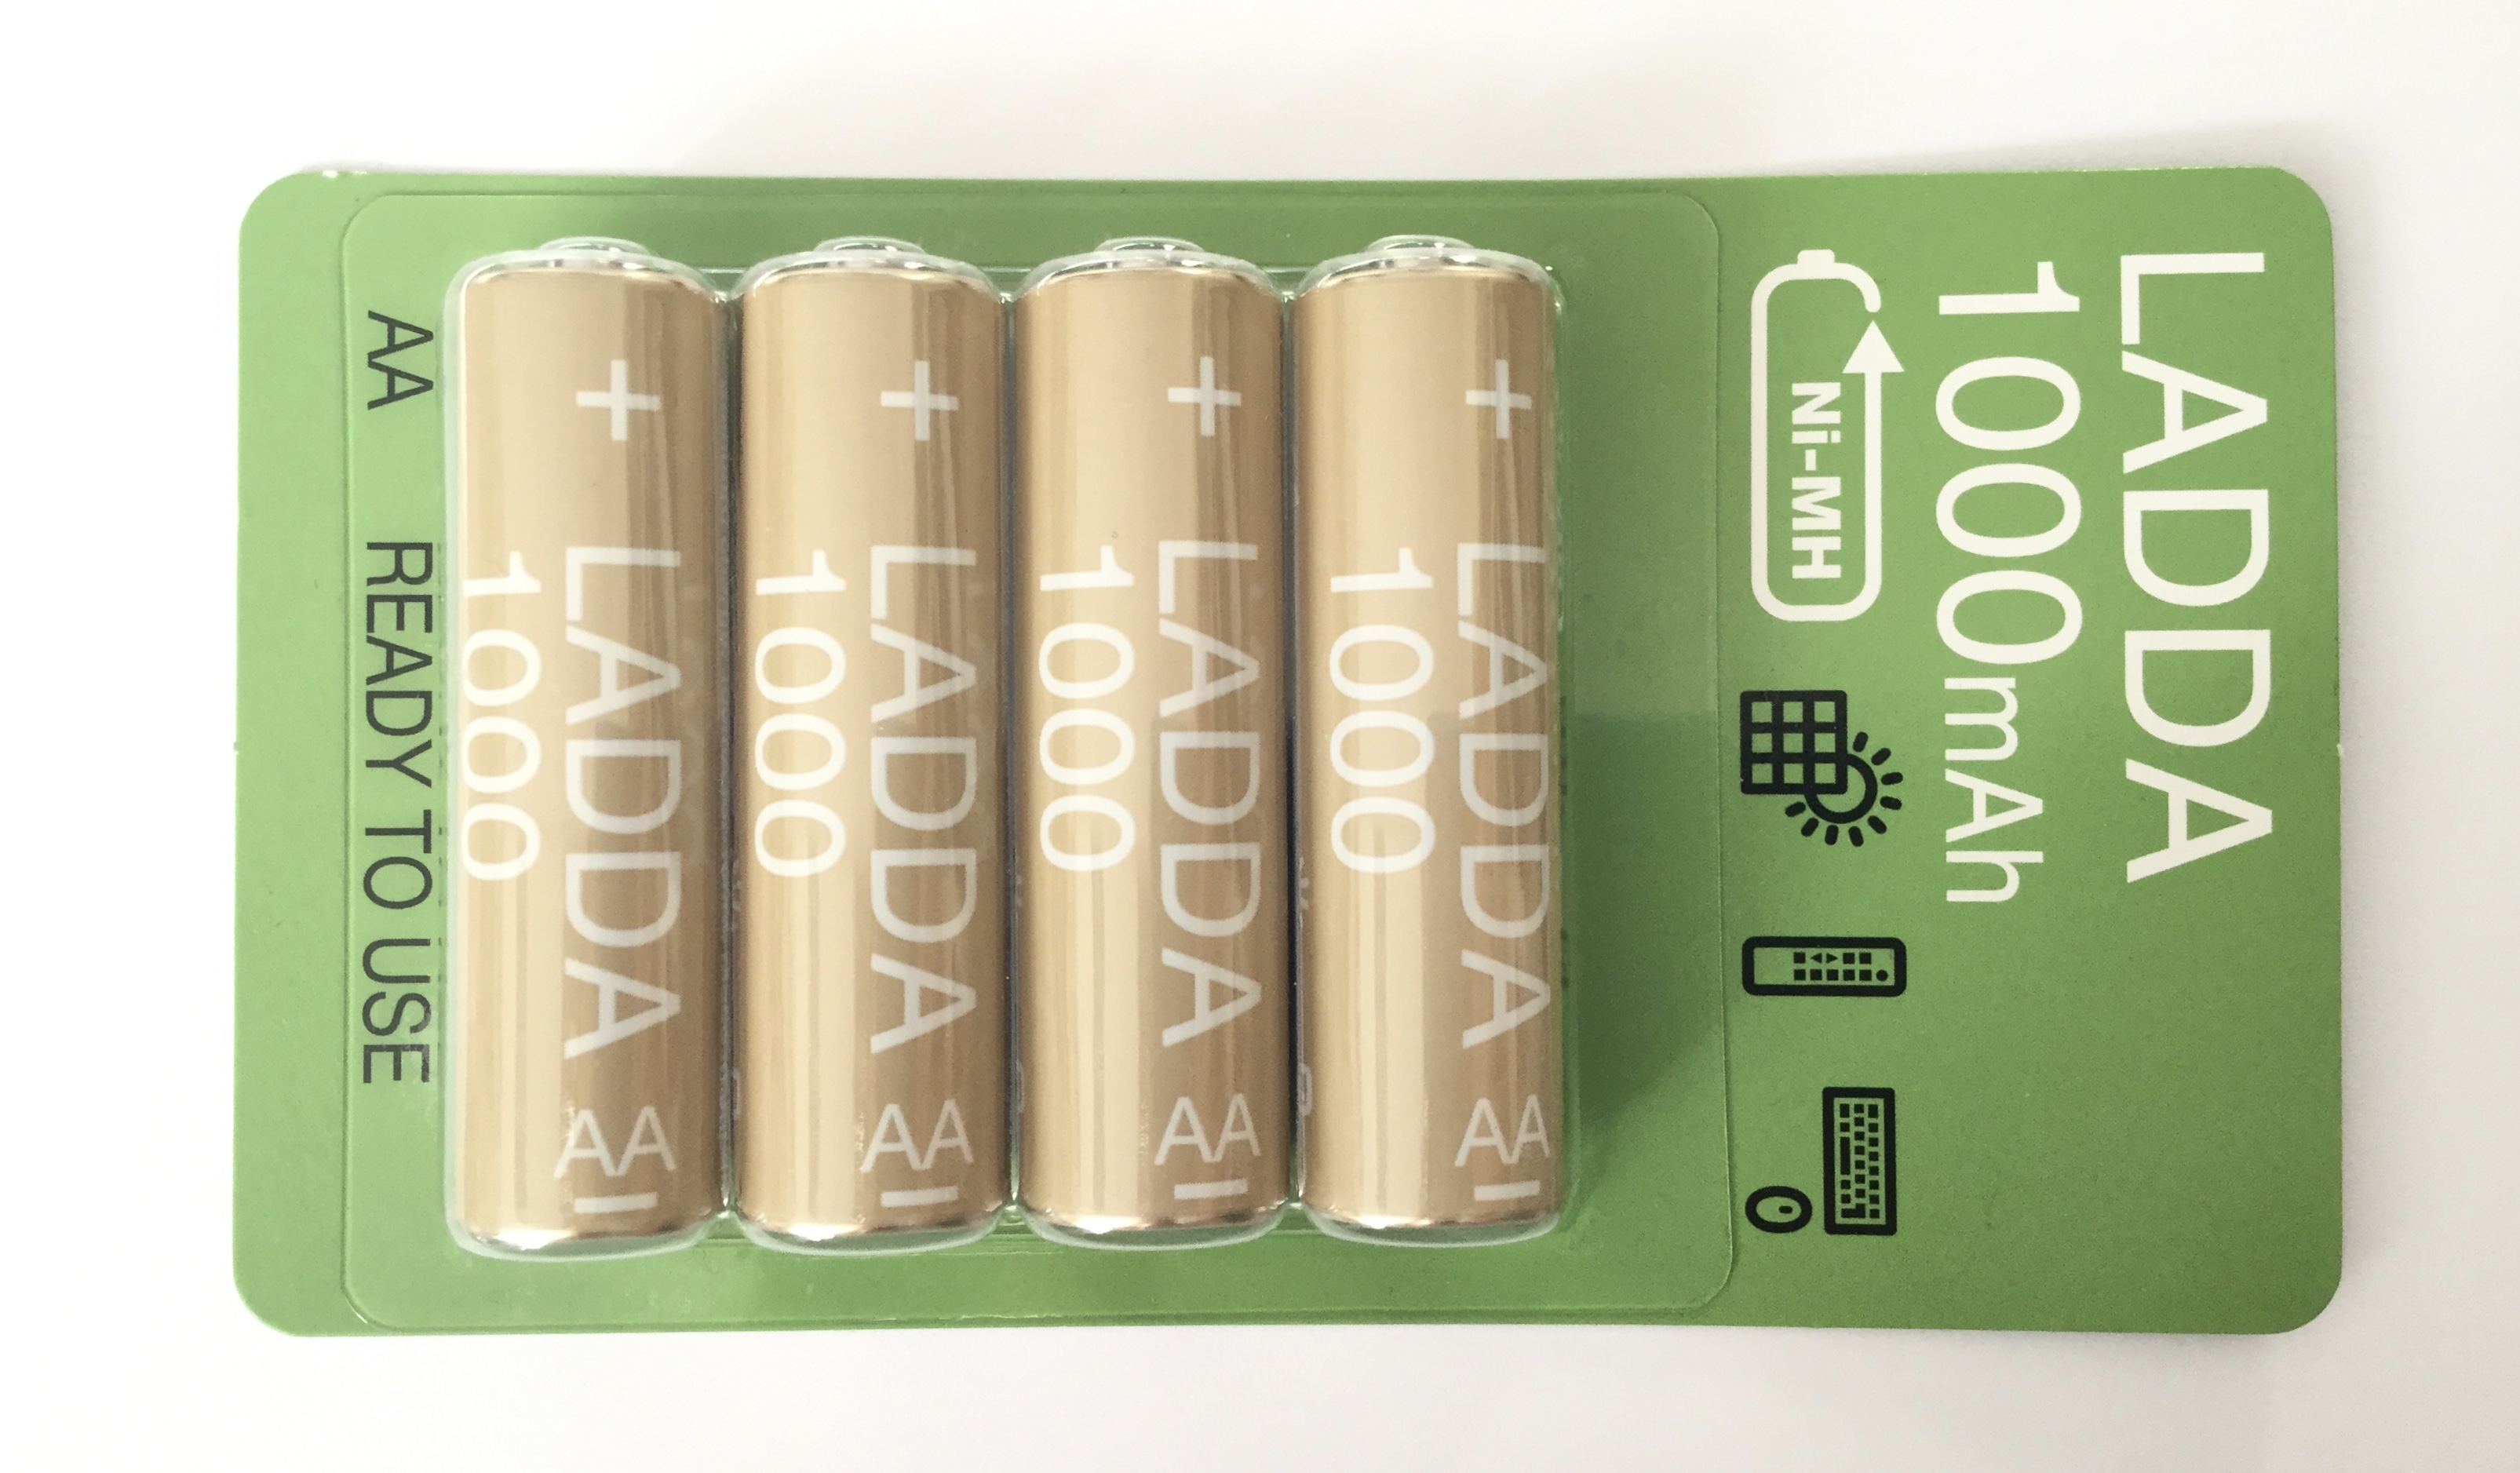 Ikea Batteries Ikea's Ladda Rechargeable Batteries | ?out Of Data Error